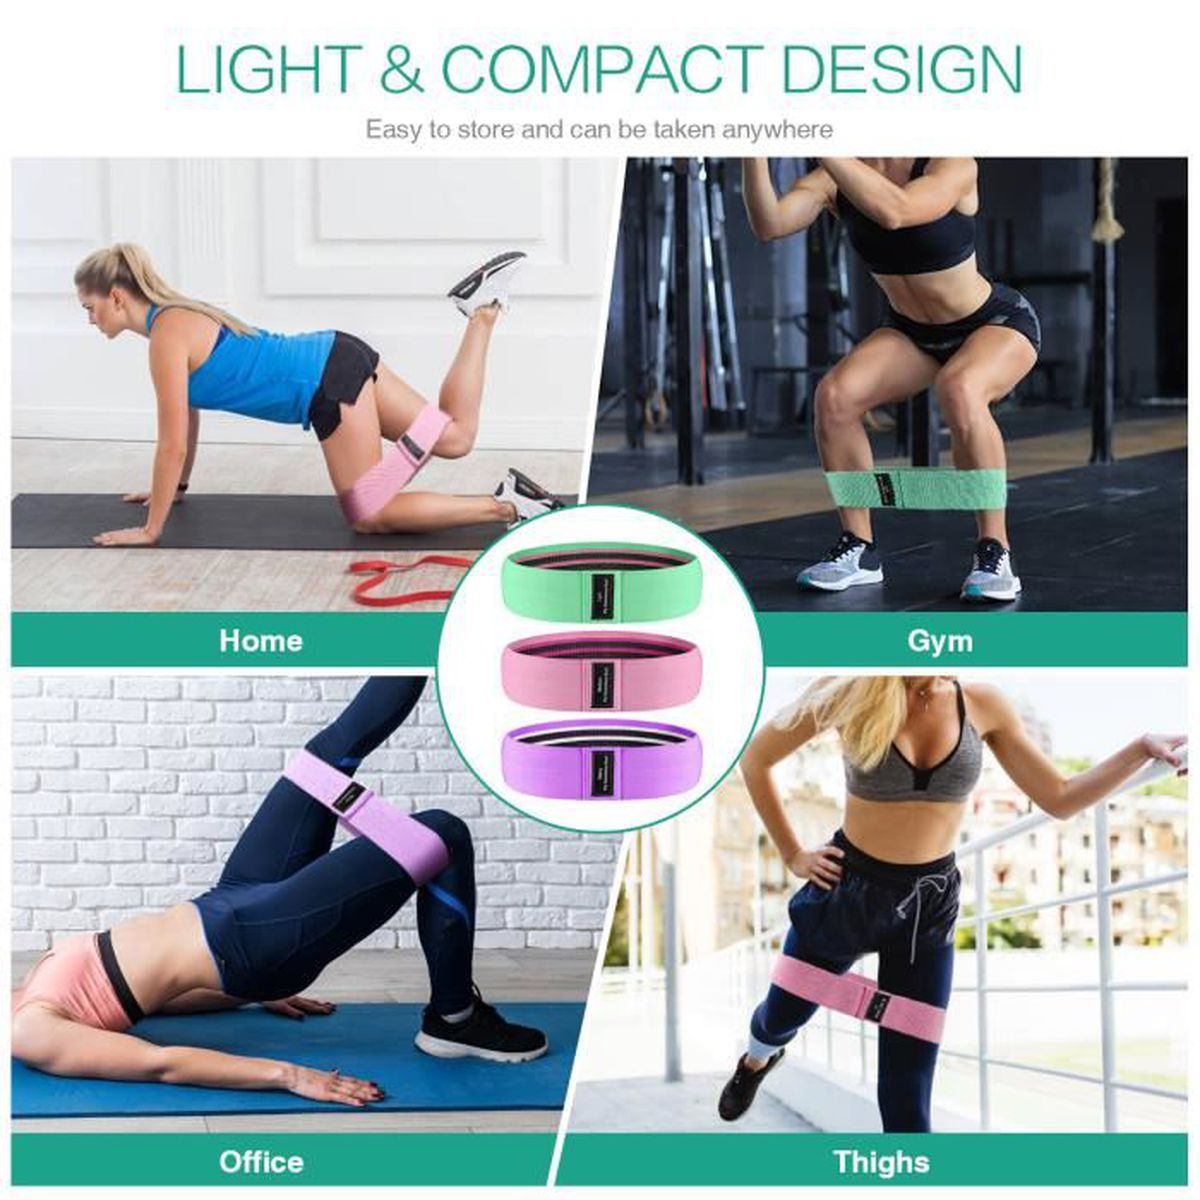 XDecorationjh Sangles Yogafemmes Yoga Stretch Strap Ceinture 8-Forme Yoga Pull Up Ceinture Corde pour Poignet Taille Booty Formation Gym Accessoires Fitness Equipment-B